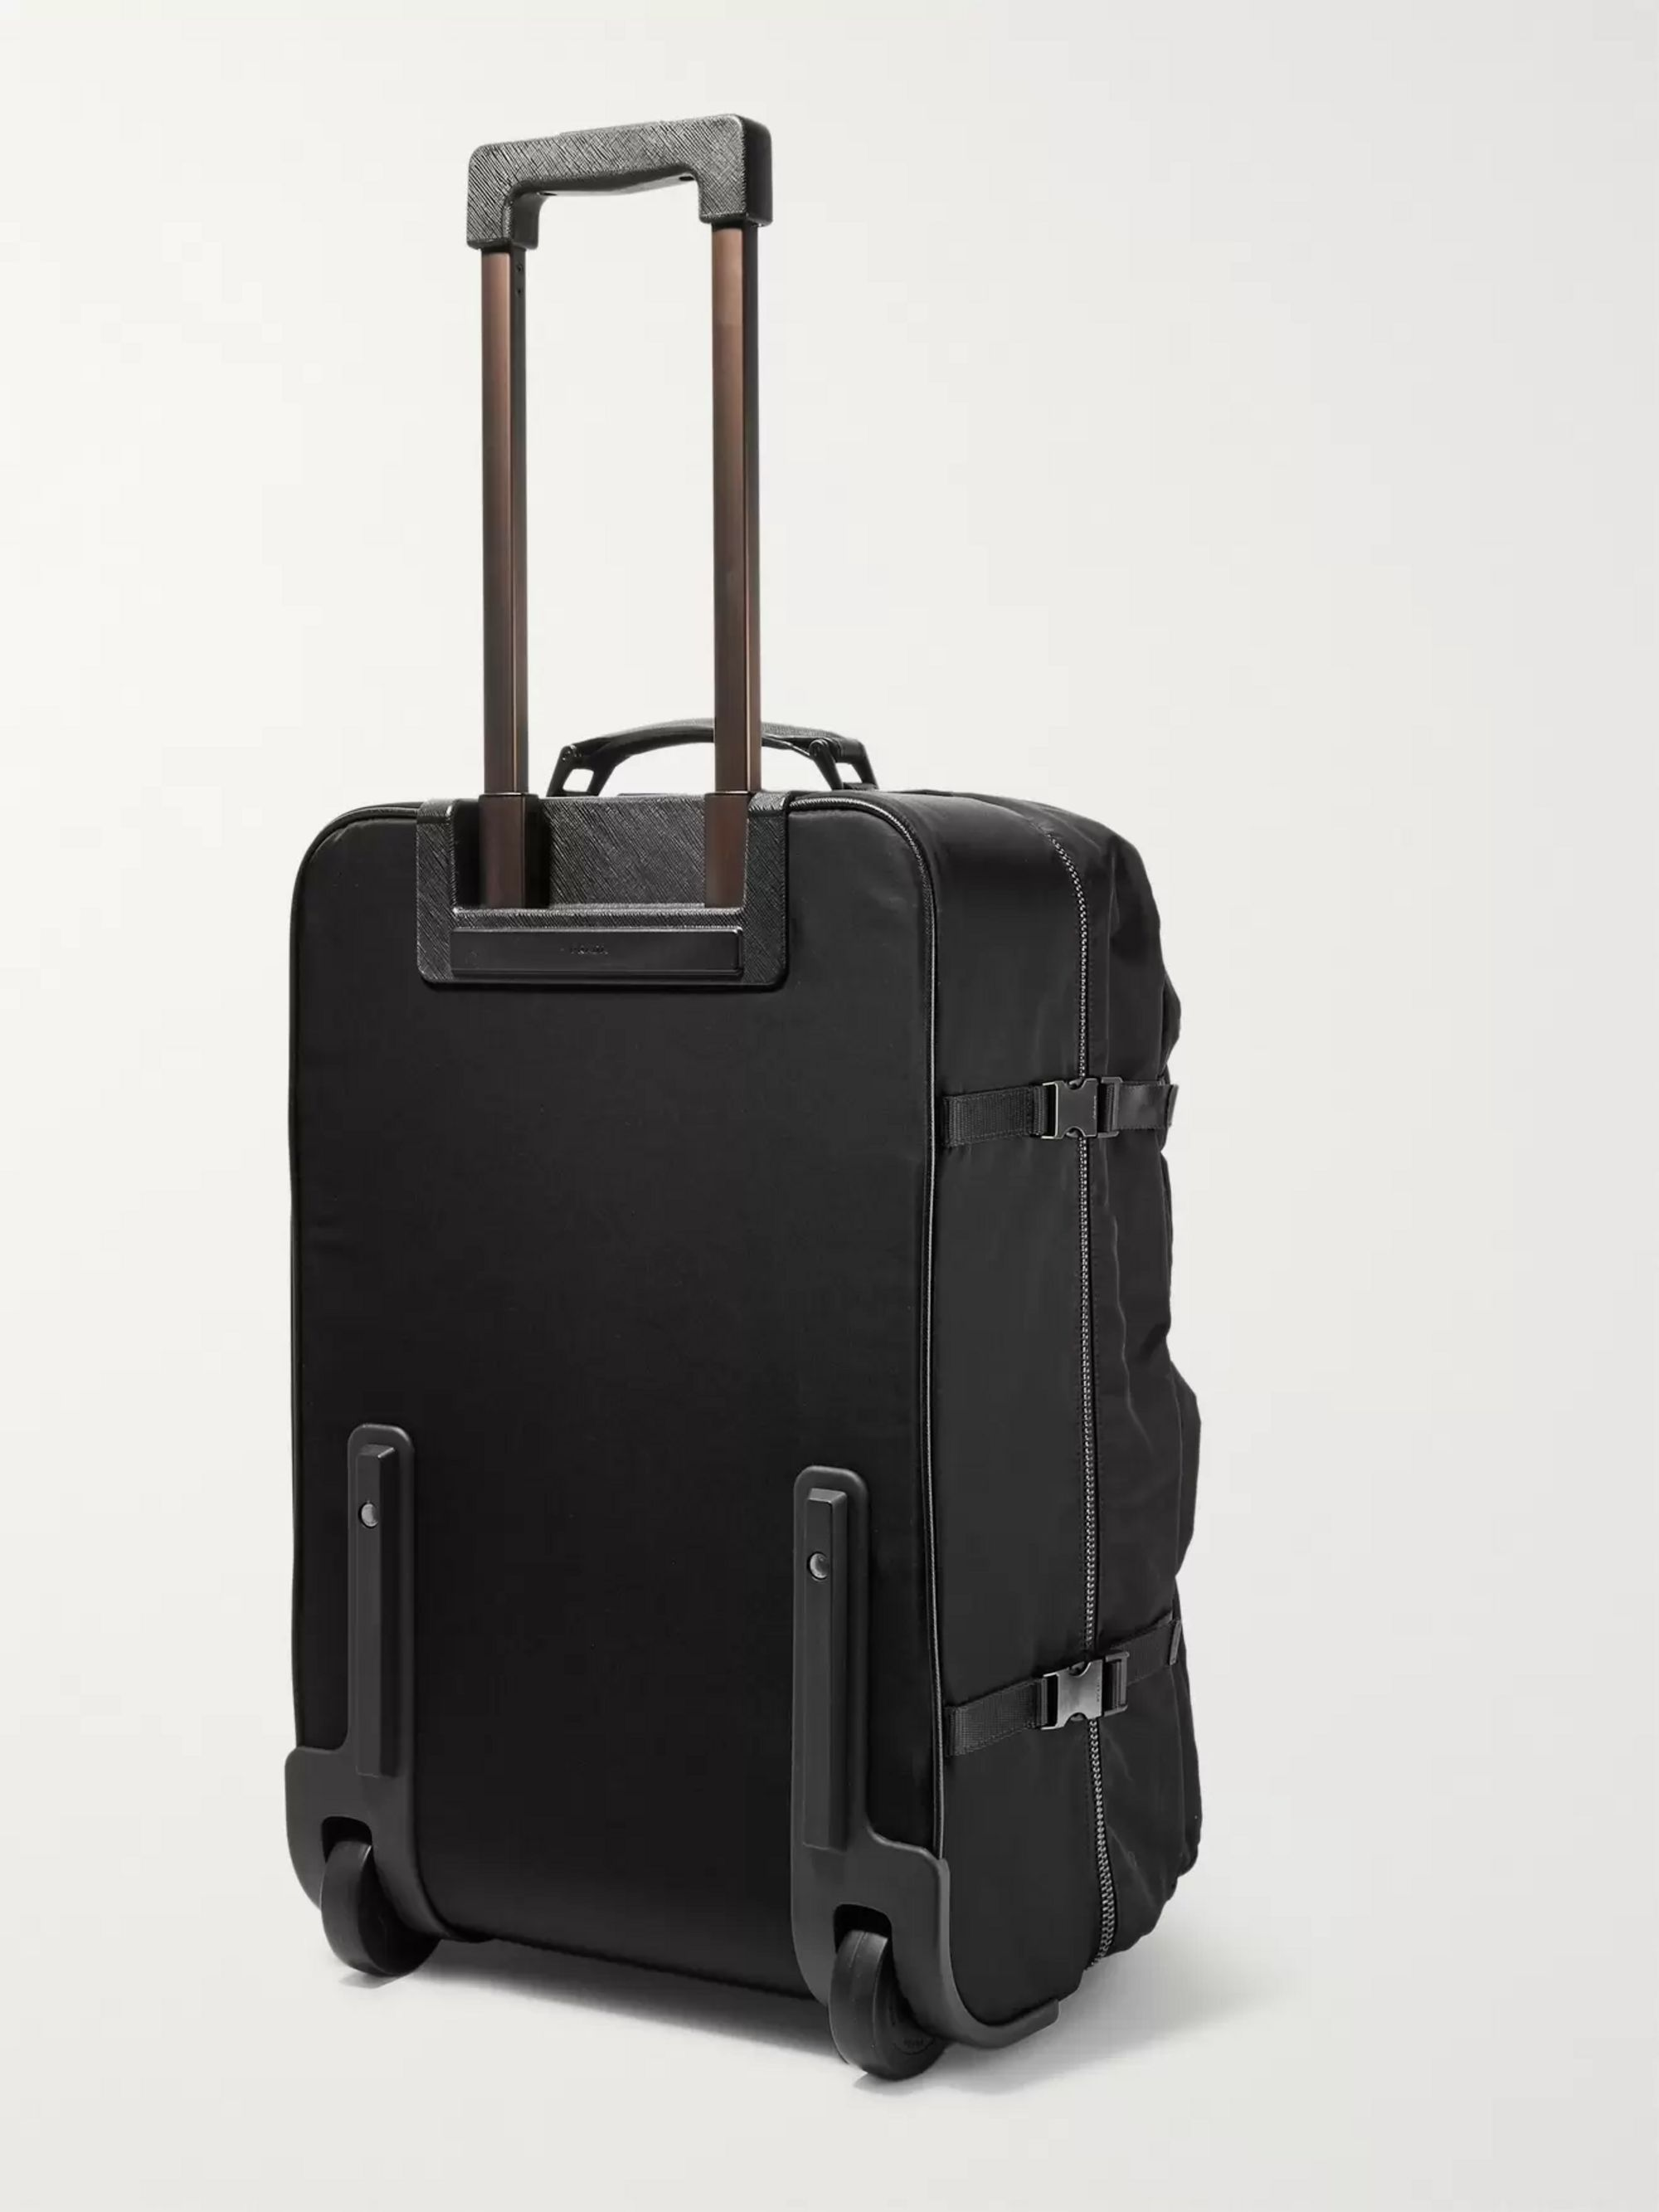 Prada Saffiano Leather-Trimmed Nylon Carry-On Suitcase